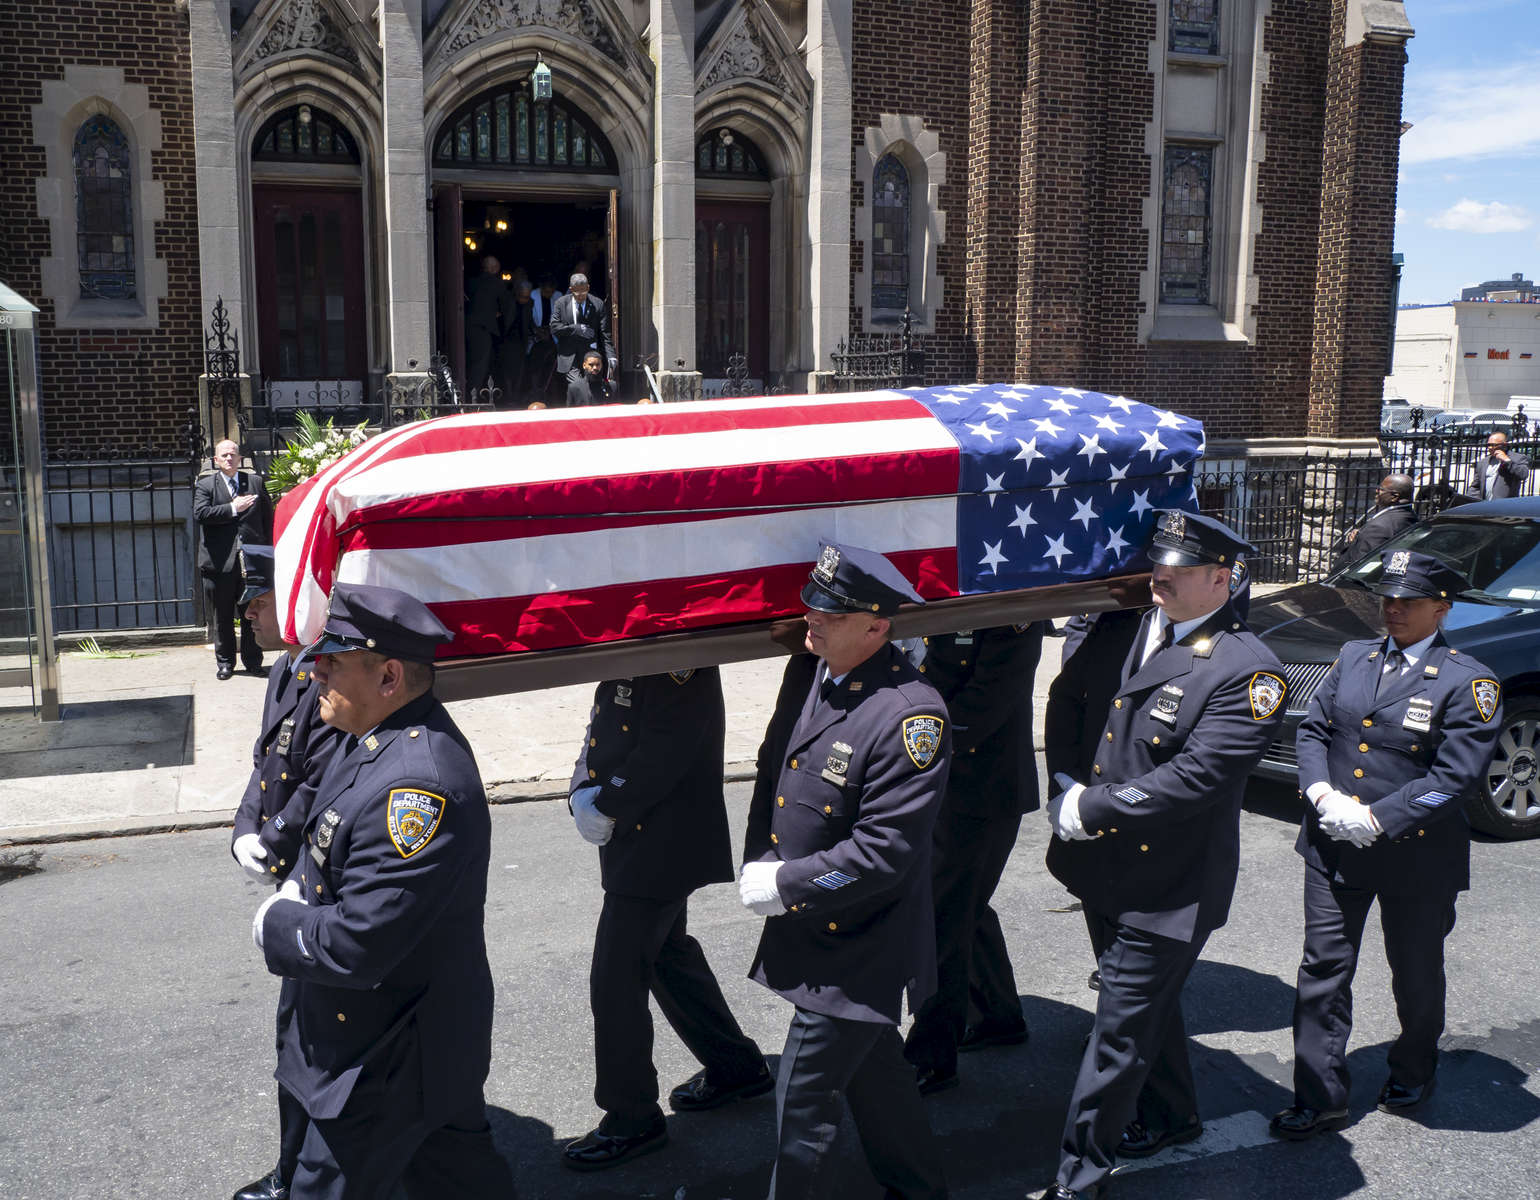 Family and love ones of retired NYPD Squad Commander Albert Dandrige gather at his funeral held St. Augustine Presbyterian Church located at 838 East 165th Street in the Bronx, New York on Tuesday, June 19, 2018. Dandridge, a trailblazing cop who served as one of the NYPD's first black commanding officers.